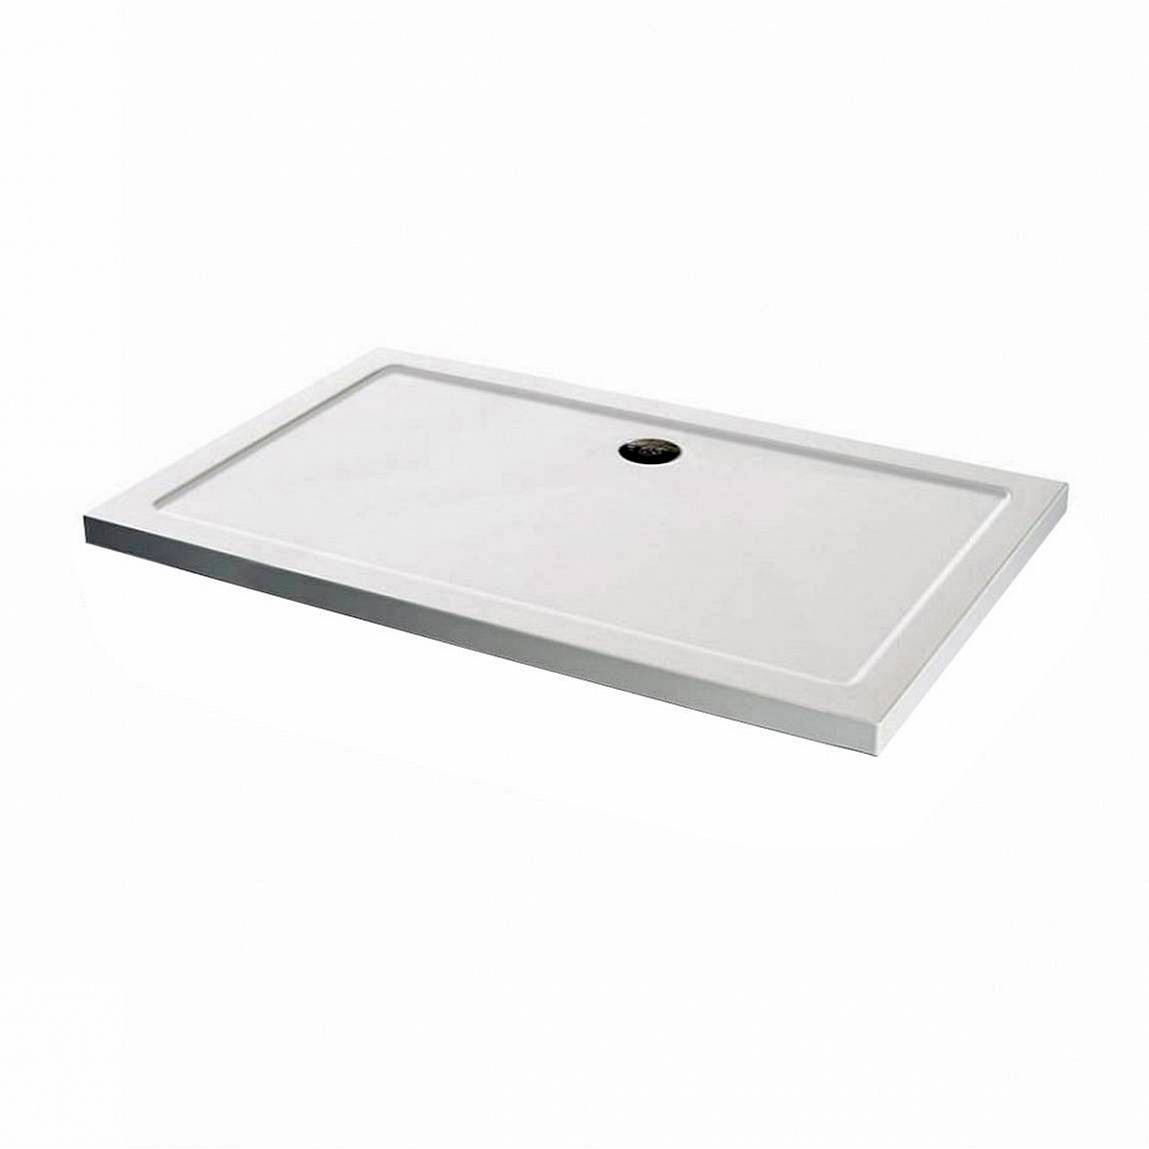 Image of Rectangular Stone Shower Tray 800 x 760